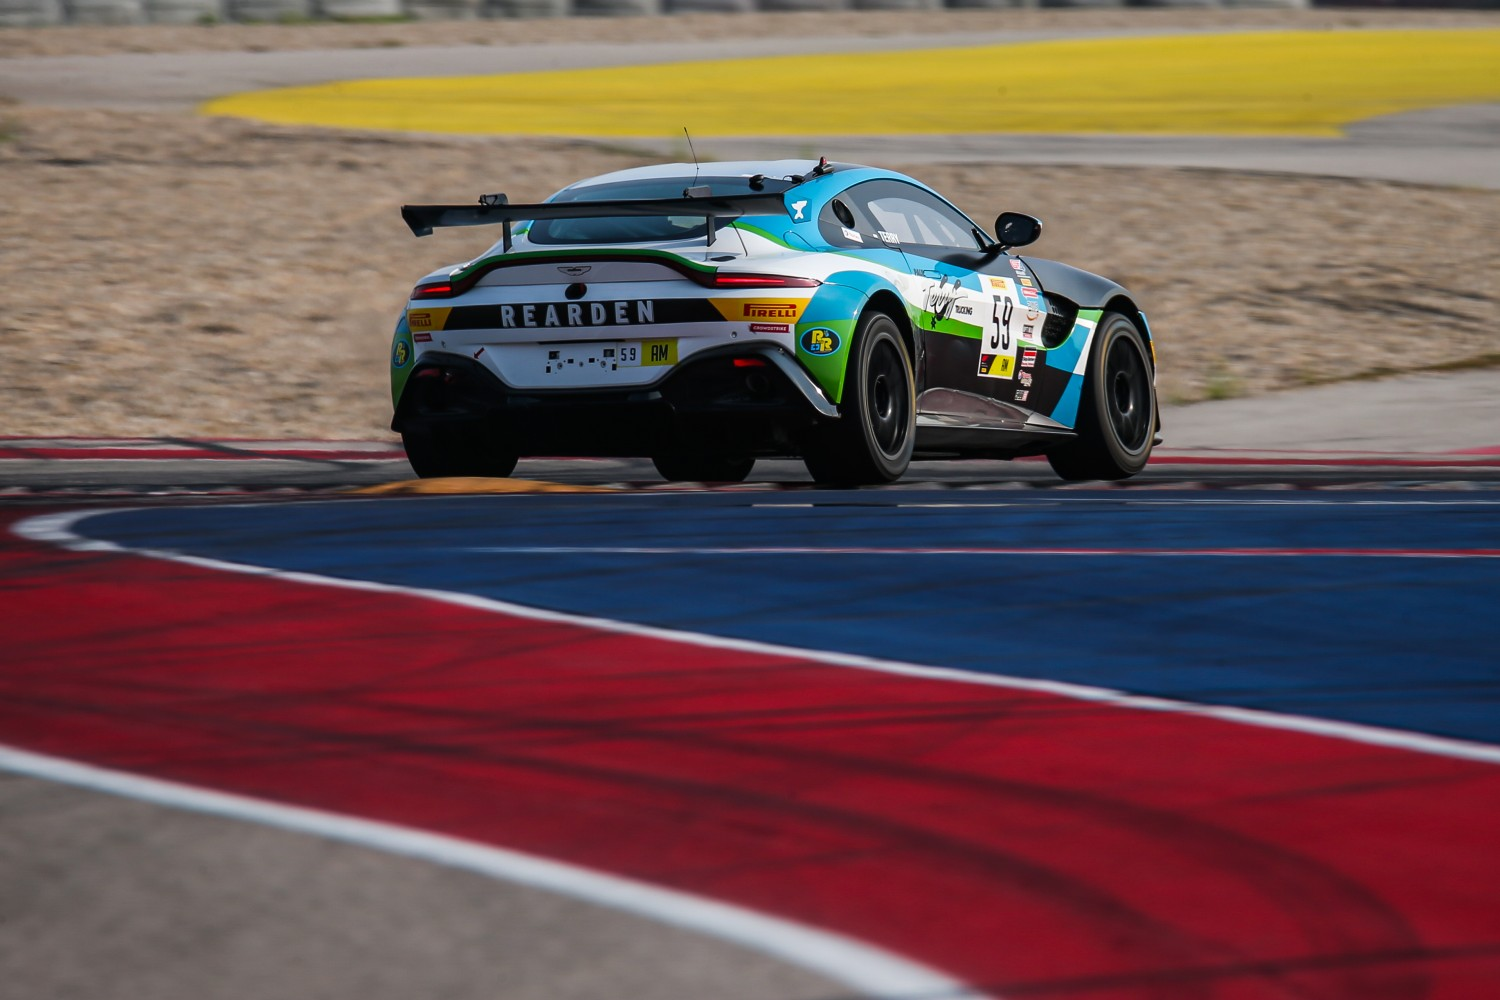 #59 Aston Martin Vantage GT4 of Paul Terry, Rearden Racing, GT4 Sprint, Am, SRO America, Circuit of the Americas, Austin TX, September 2020.  | Sarah Weeks/SRO